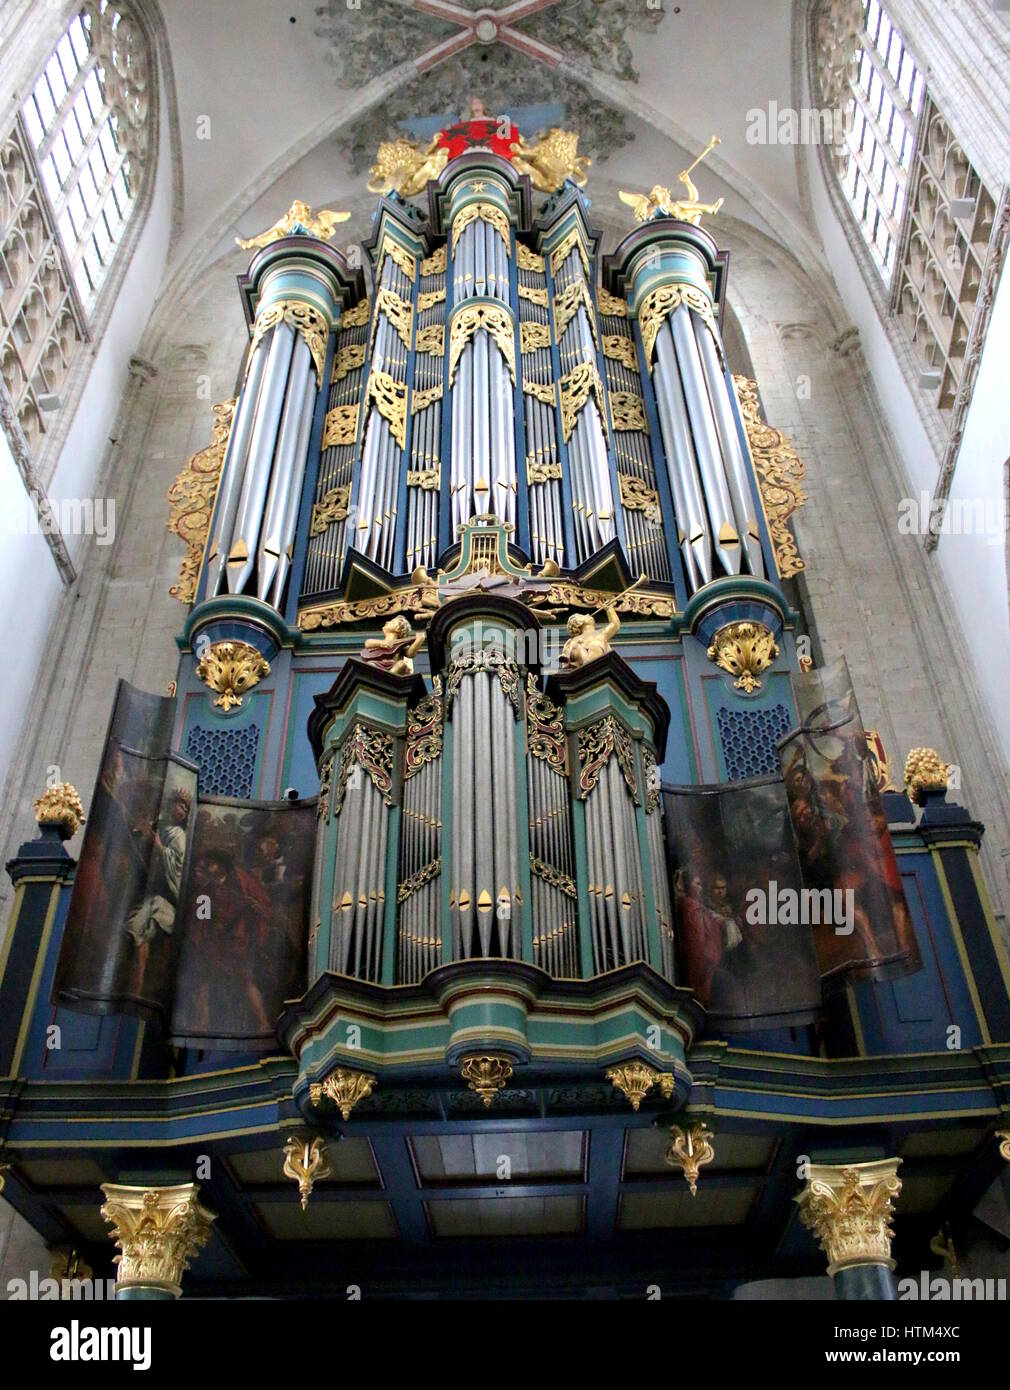 Monumental Flentrop organ in the Church of our Lady Stock